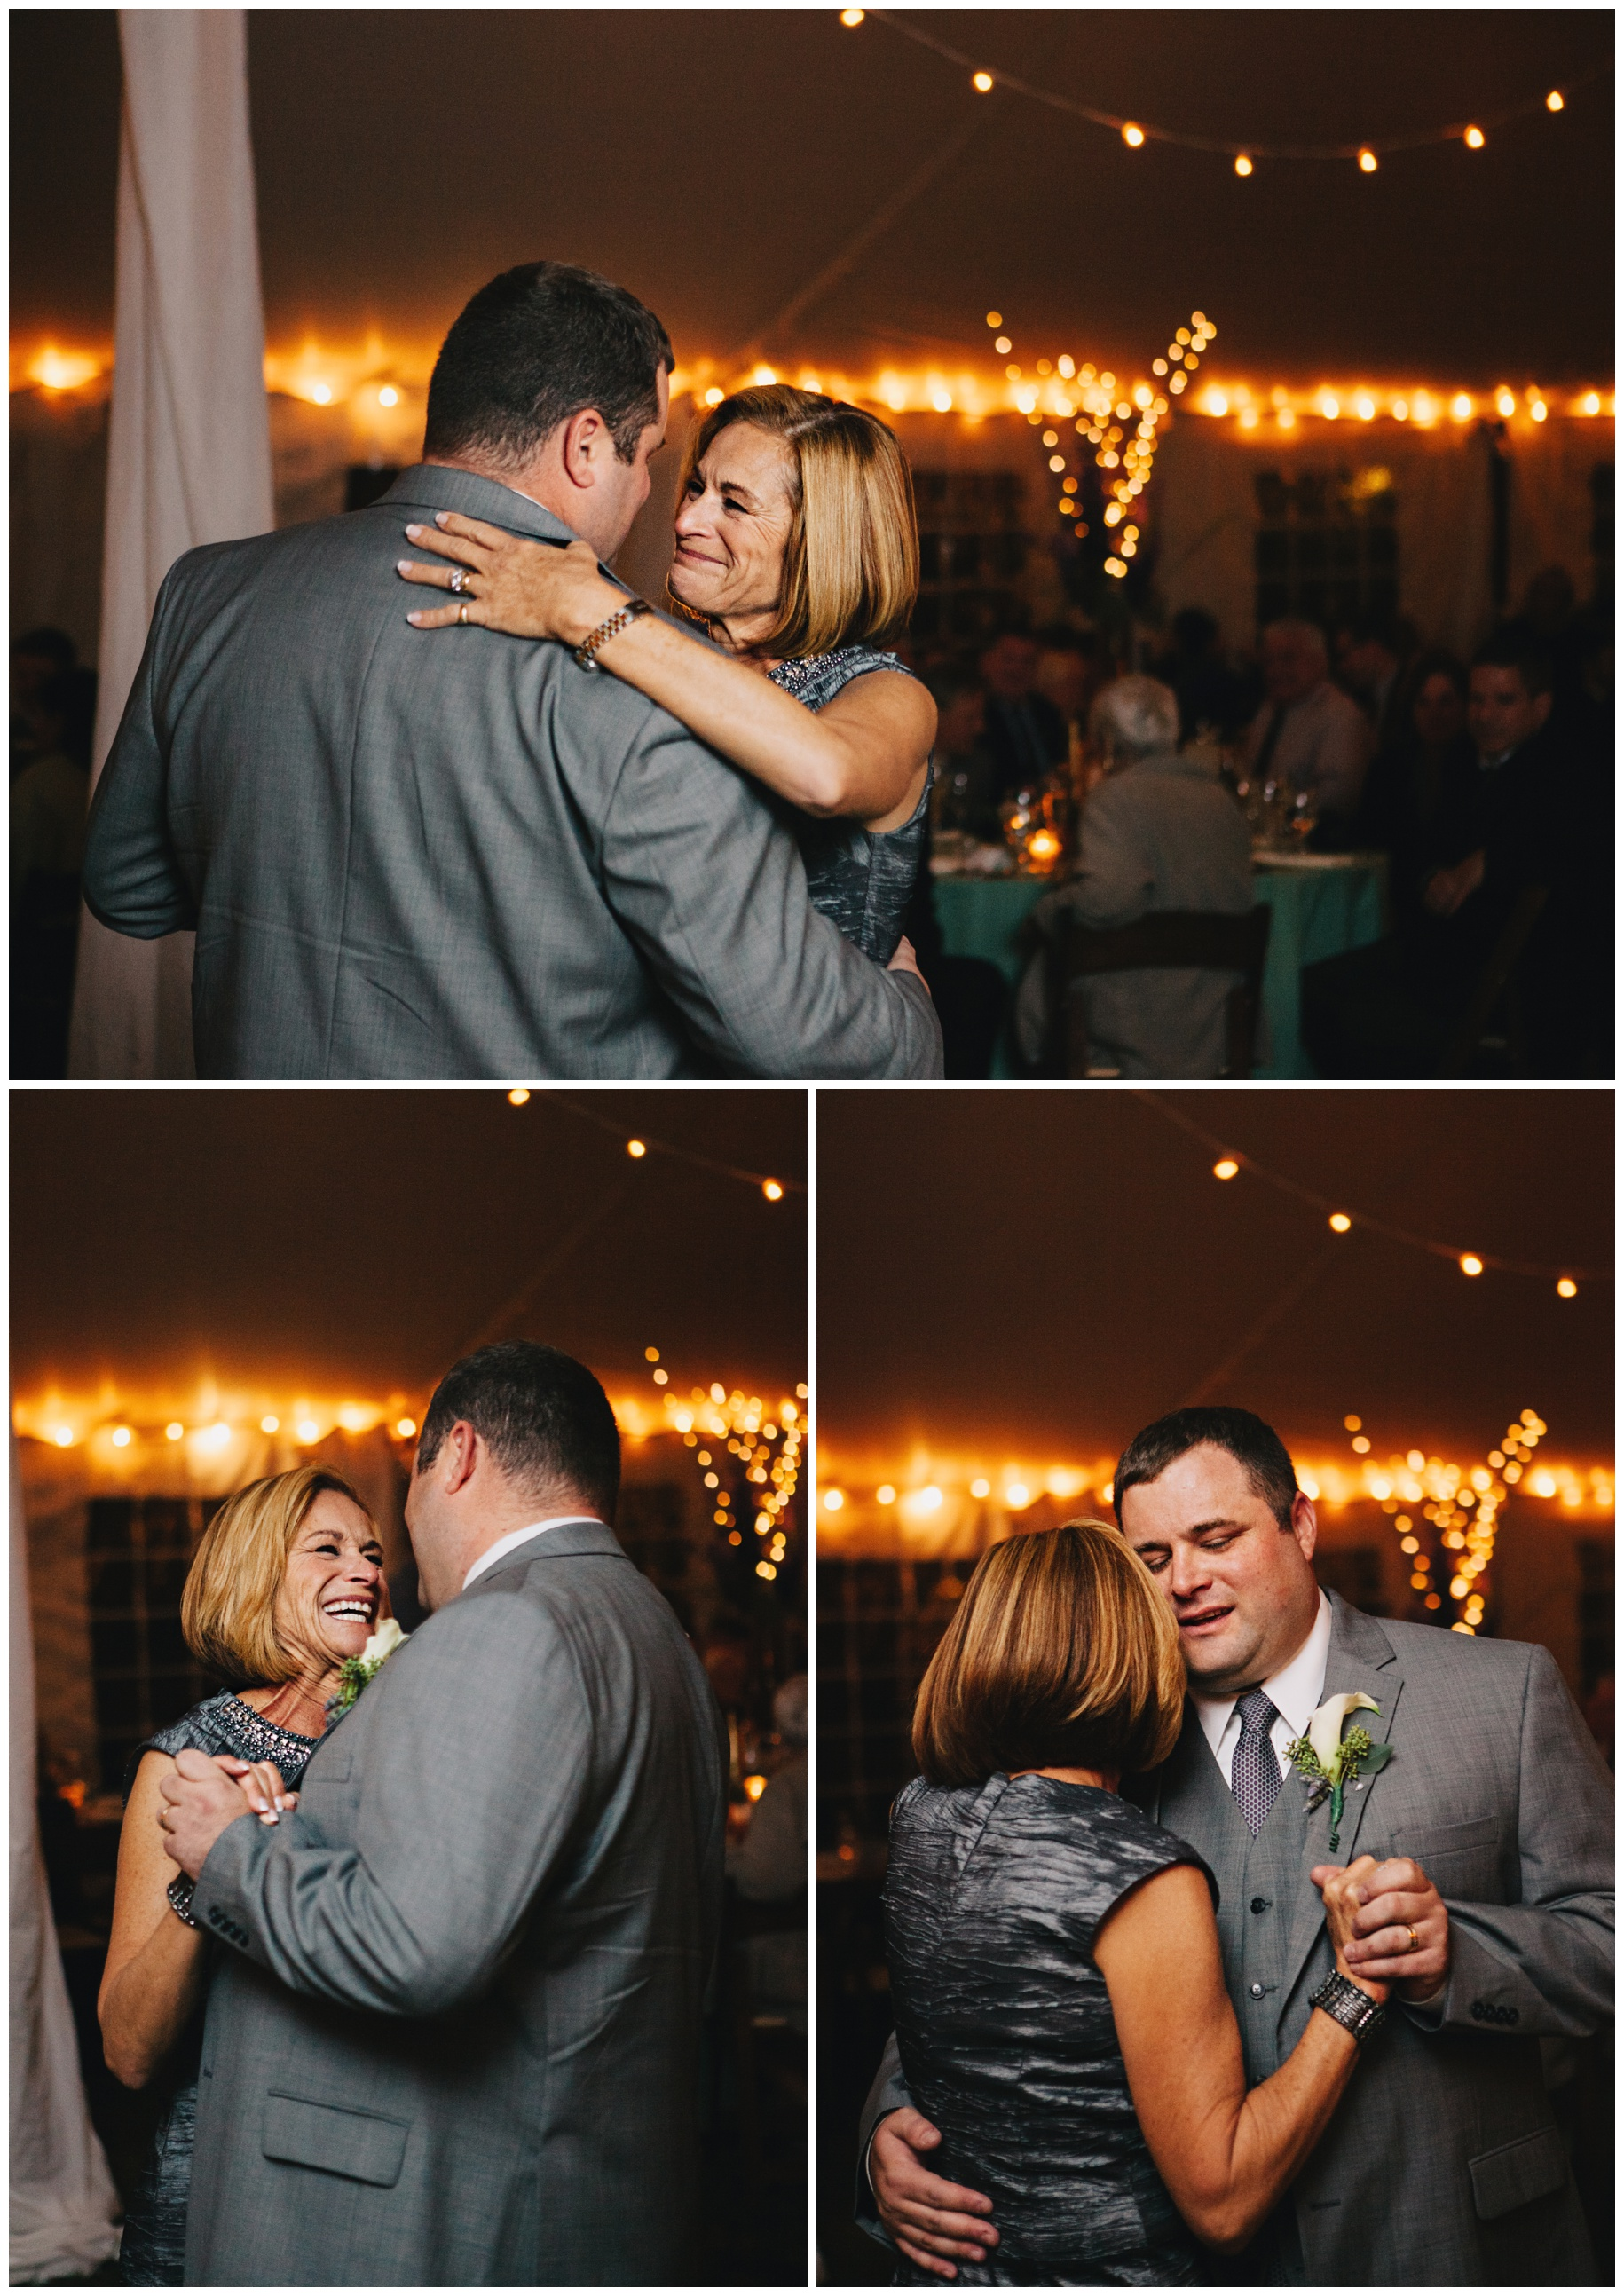 maineweddingphotographer_laudholmfarm_wells_barn_wedding-035